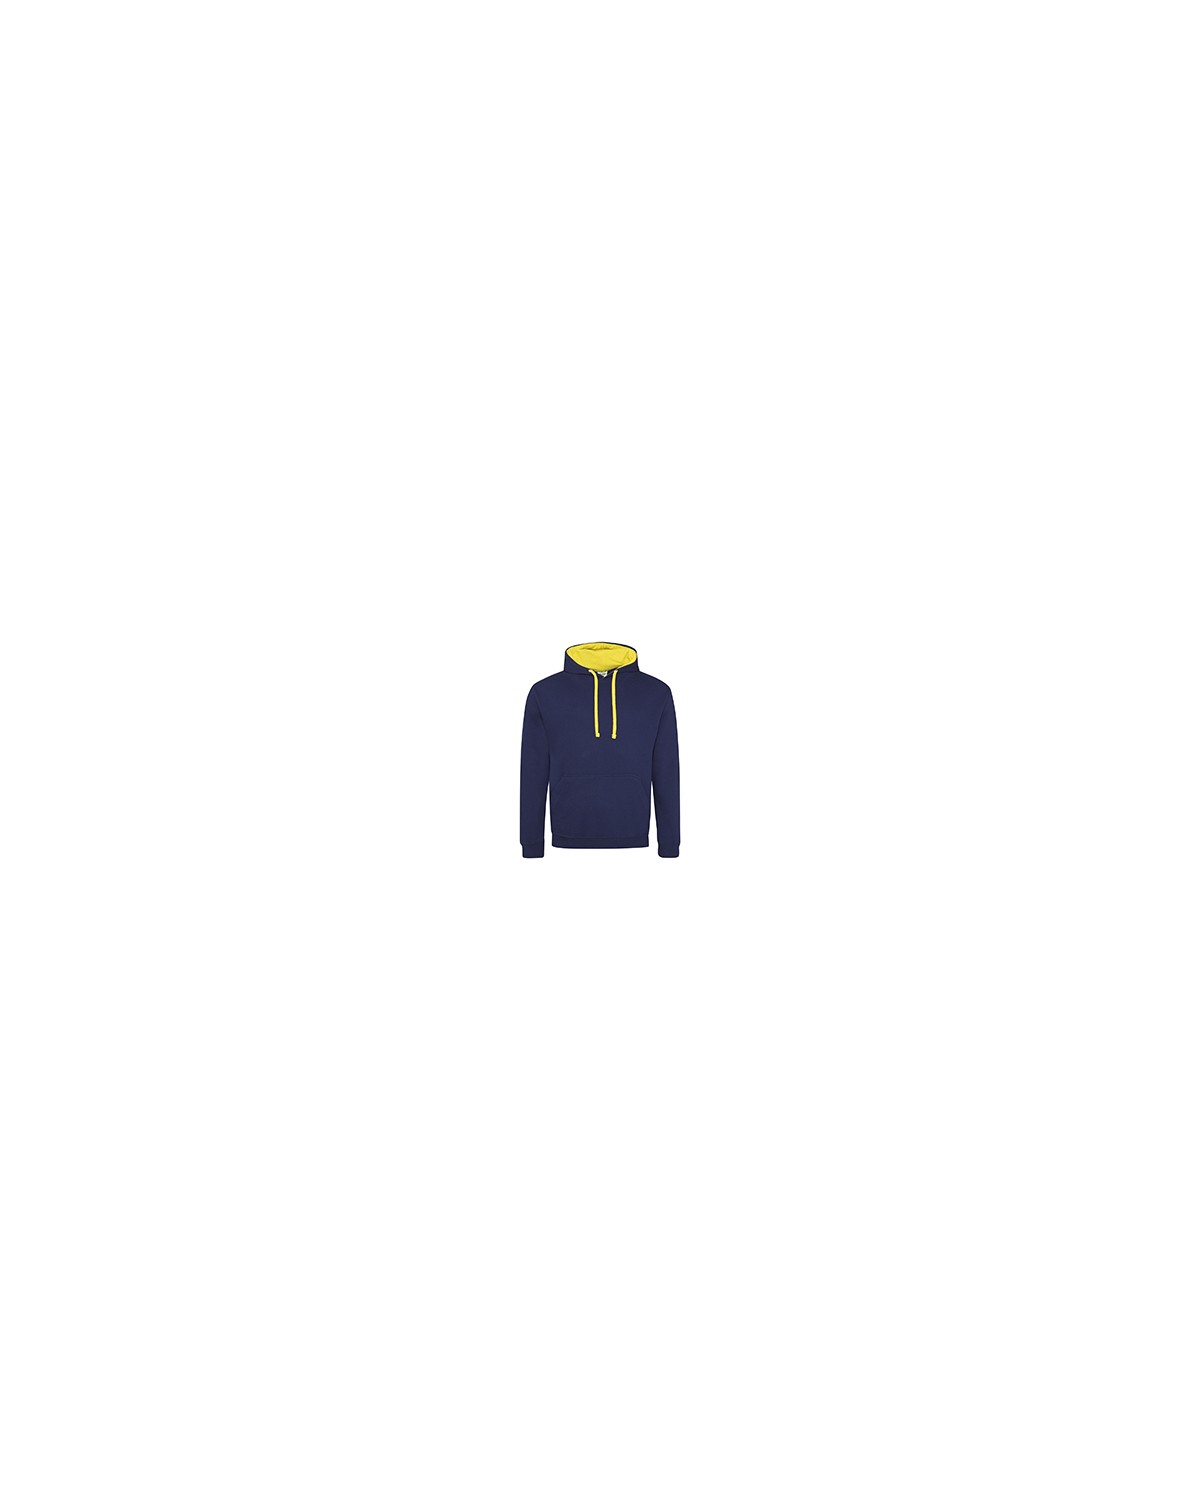 JHA003 Just Hoods By AWDis OXF NVY/ SUN YLW